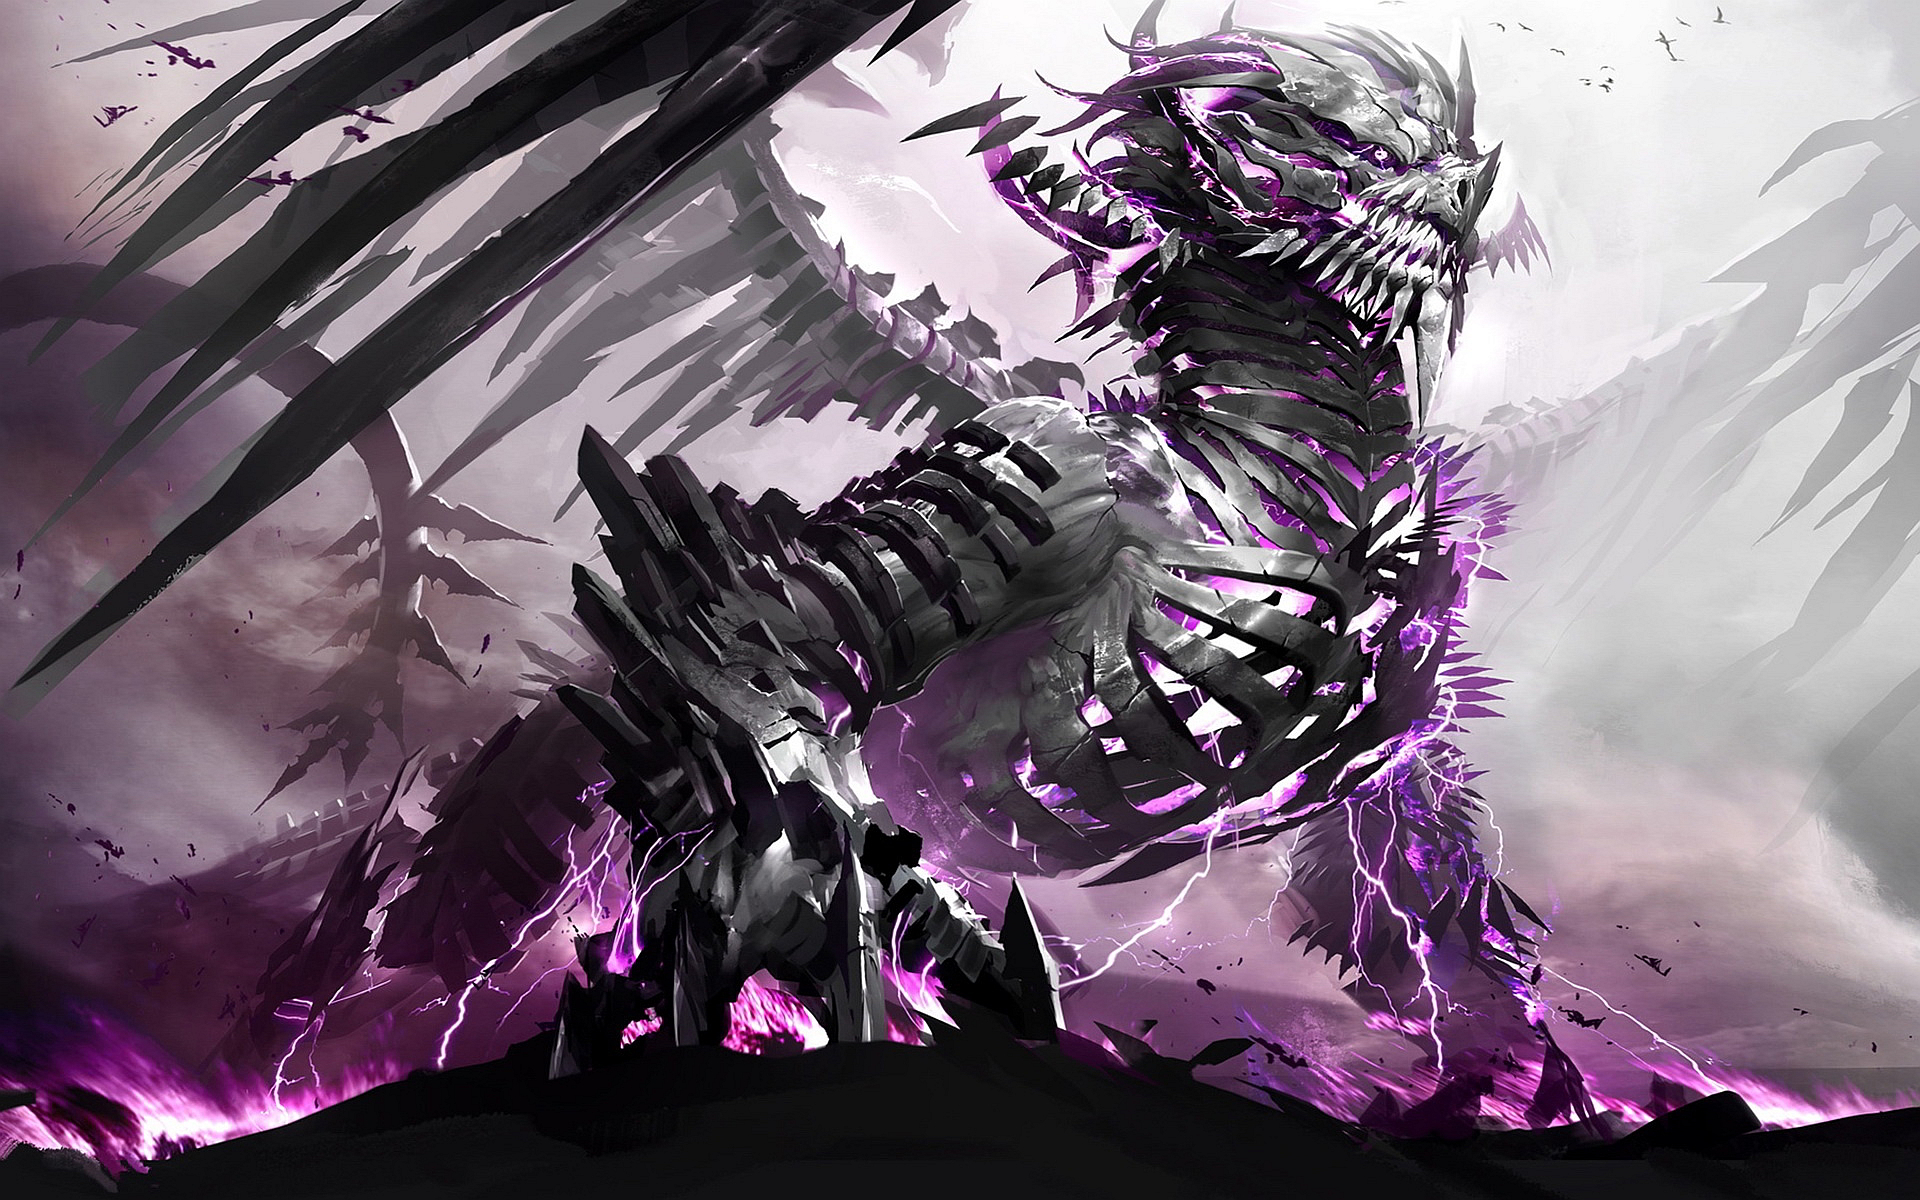 Coolest Dragon Wallpapers   Dragon City Guide 1920x1200